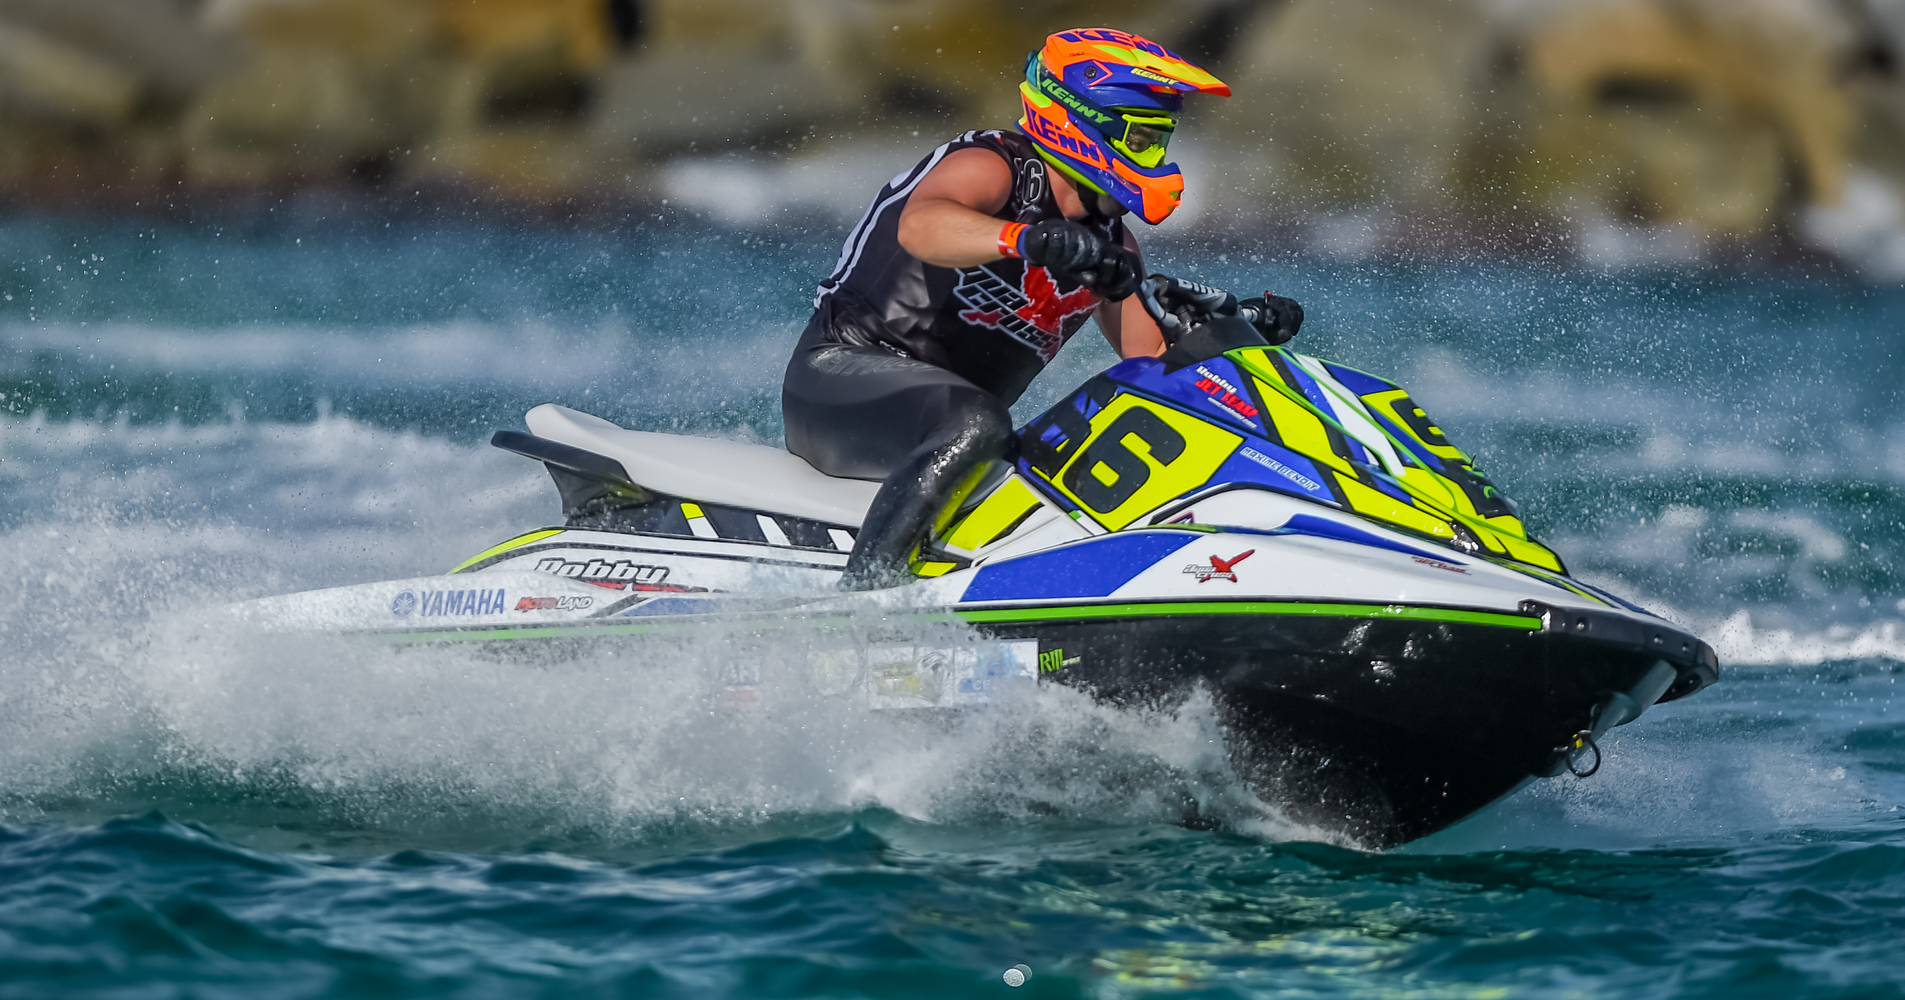 Maxime Benoit secured the Spark / EX class with a dramatic victory in Port Balis